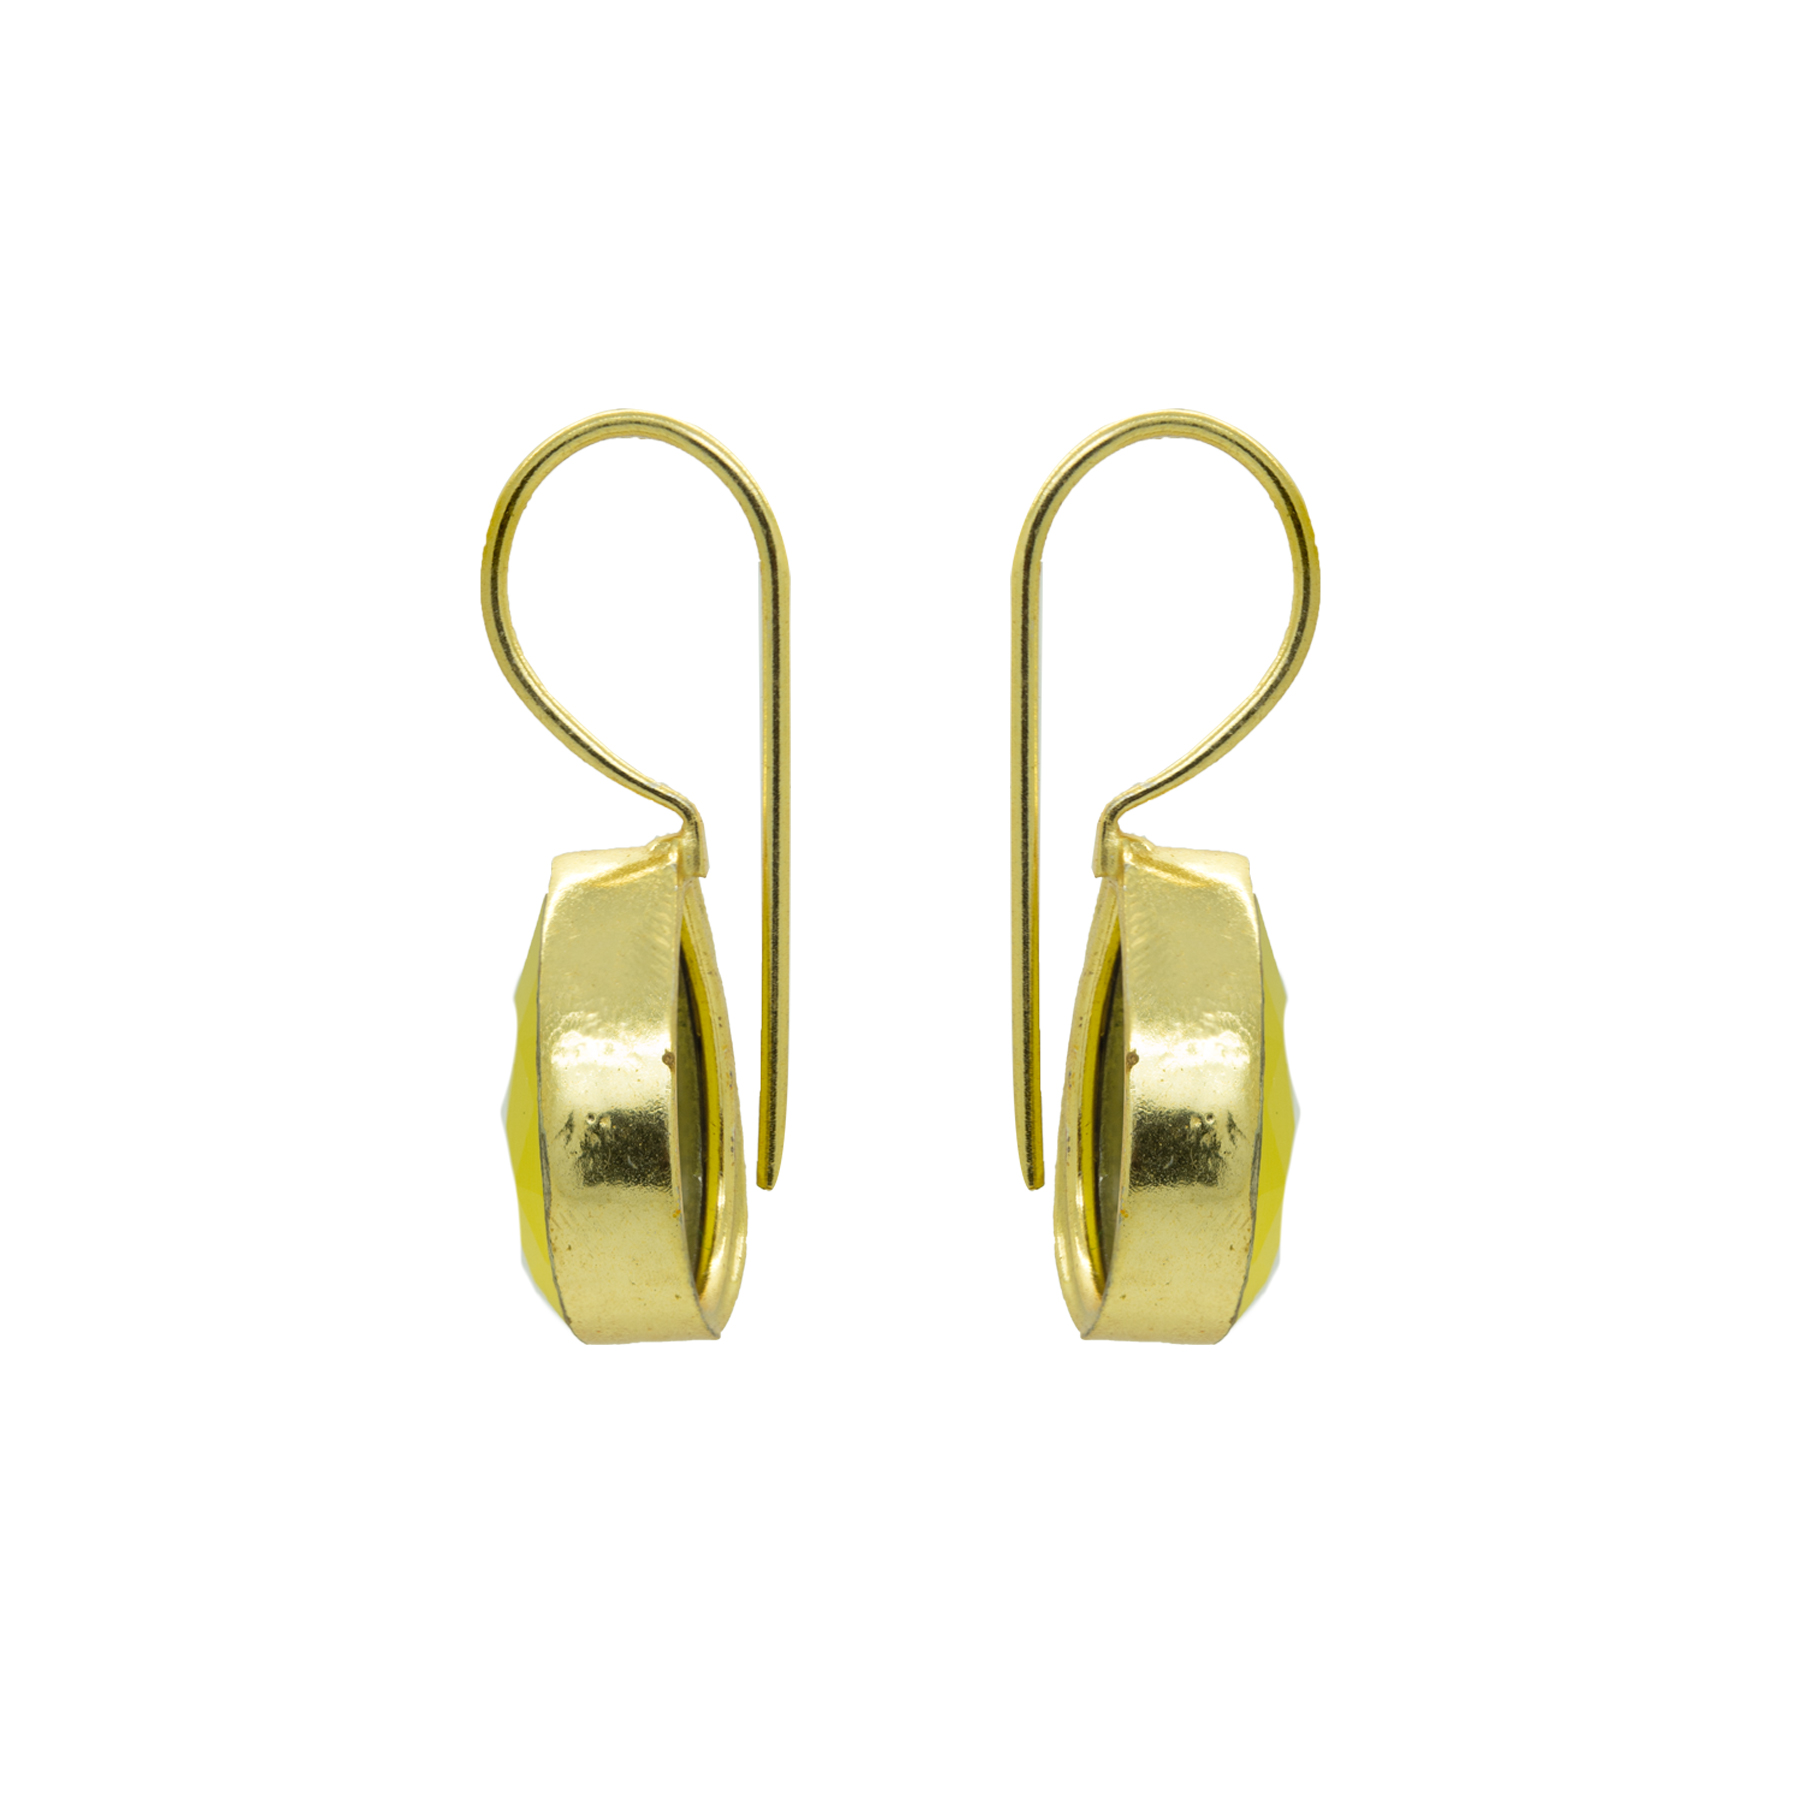 Light Weighted Hook Yellow Earring